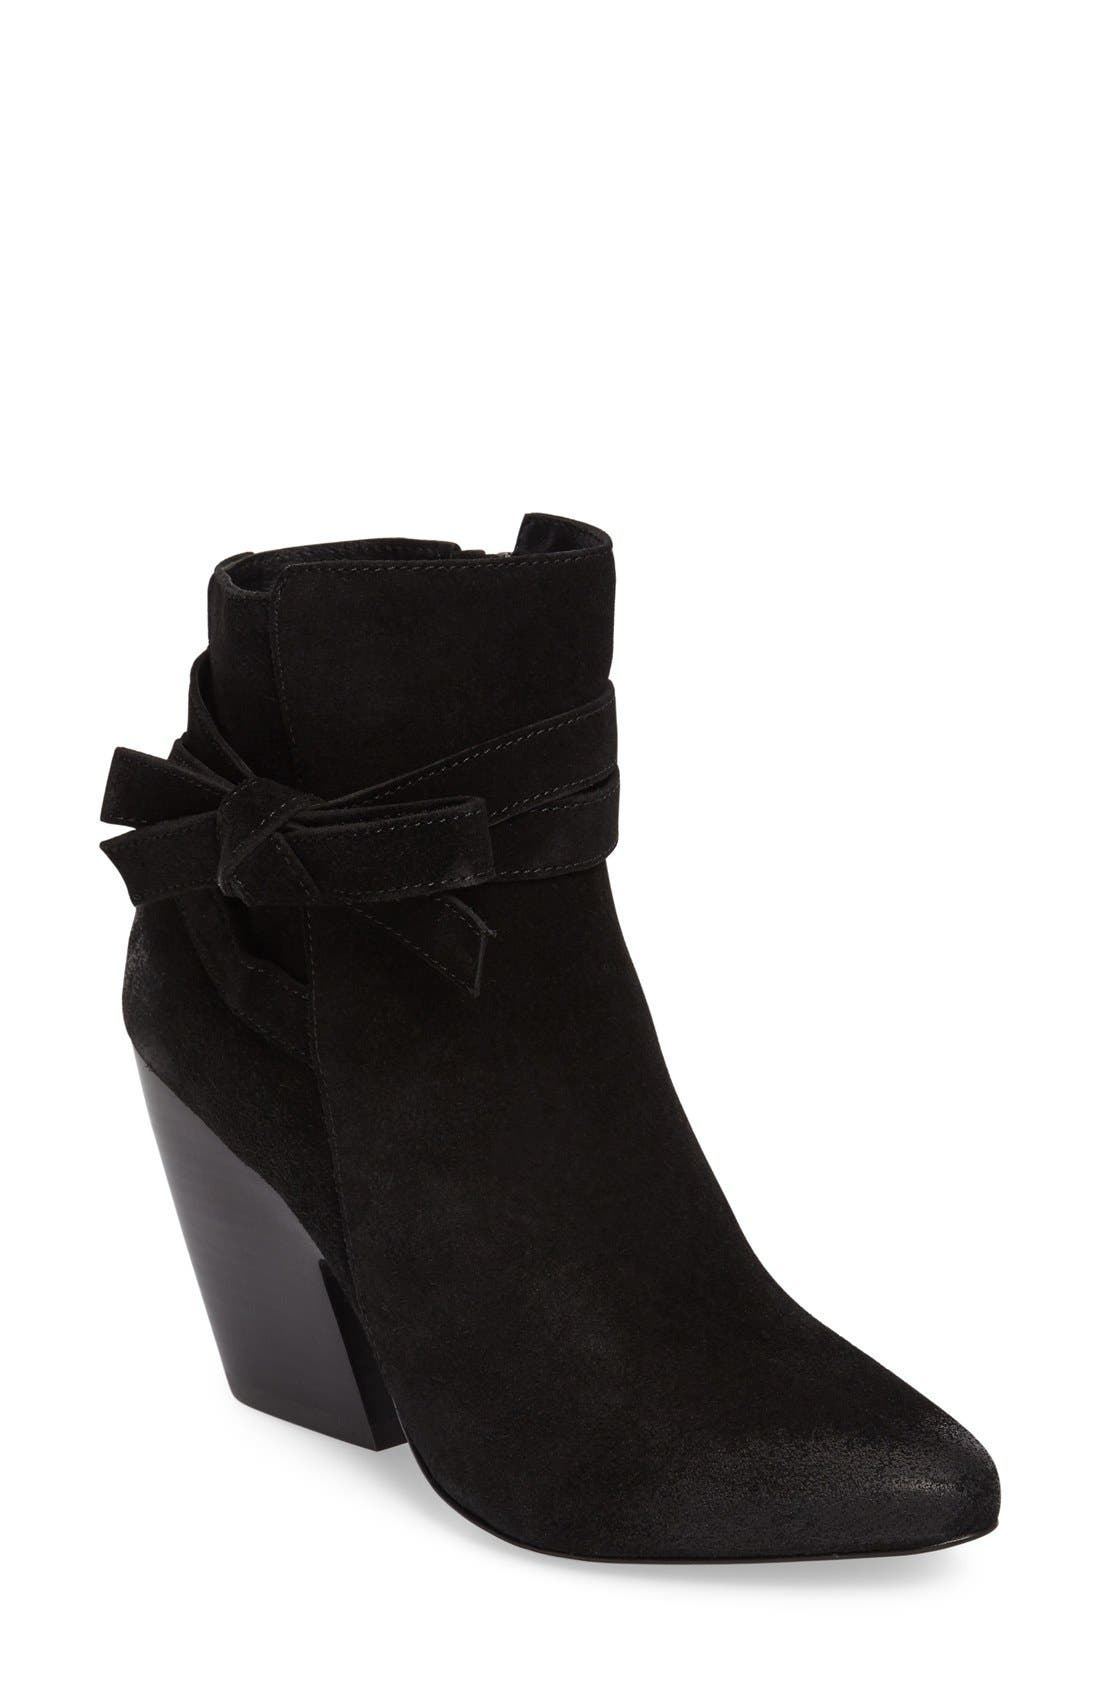 PELLE MODA Jax Block Heel Bootie, Main, color, 001